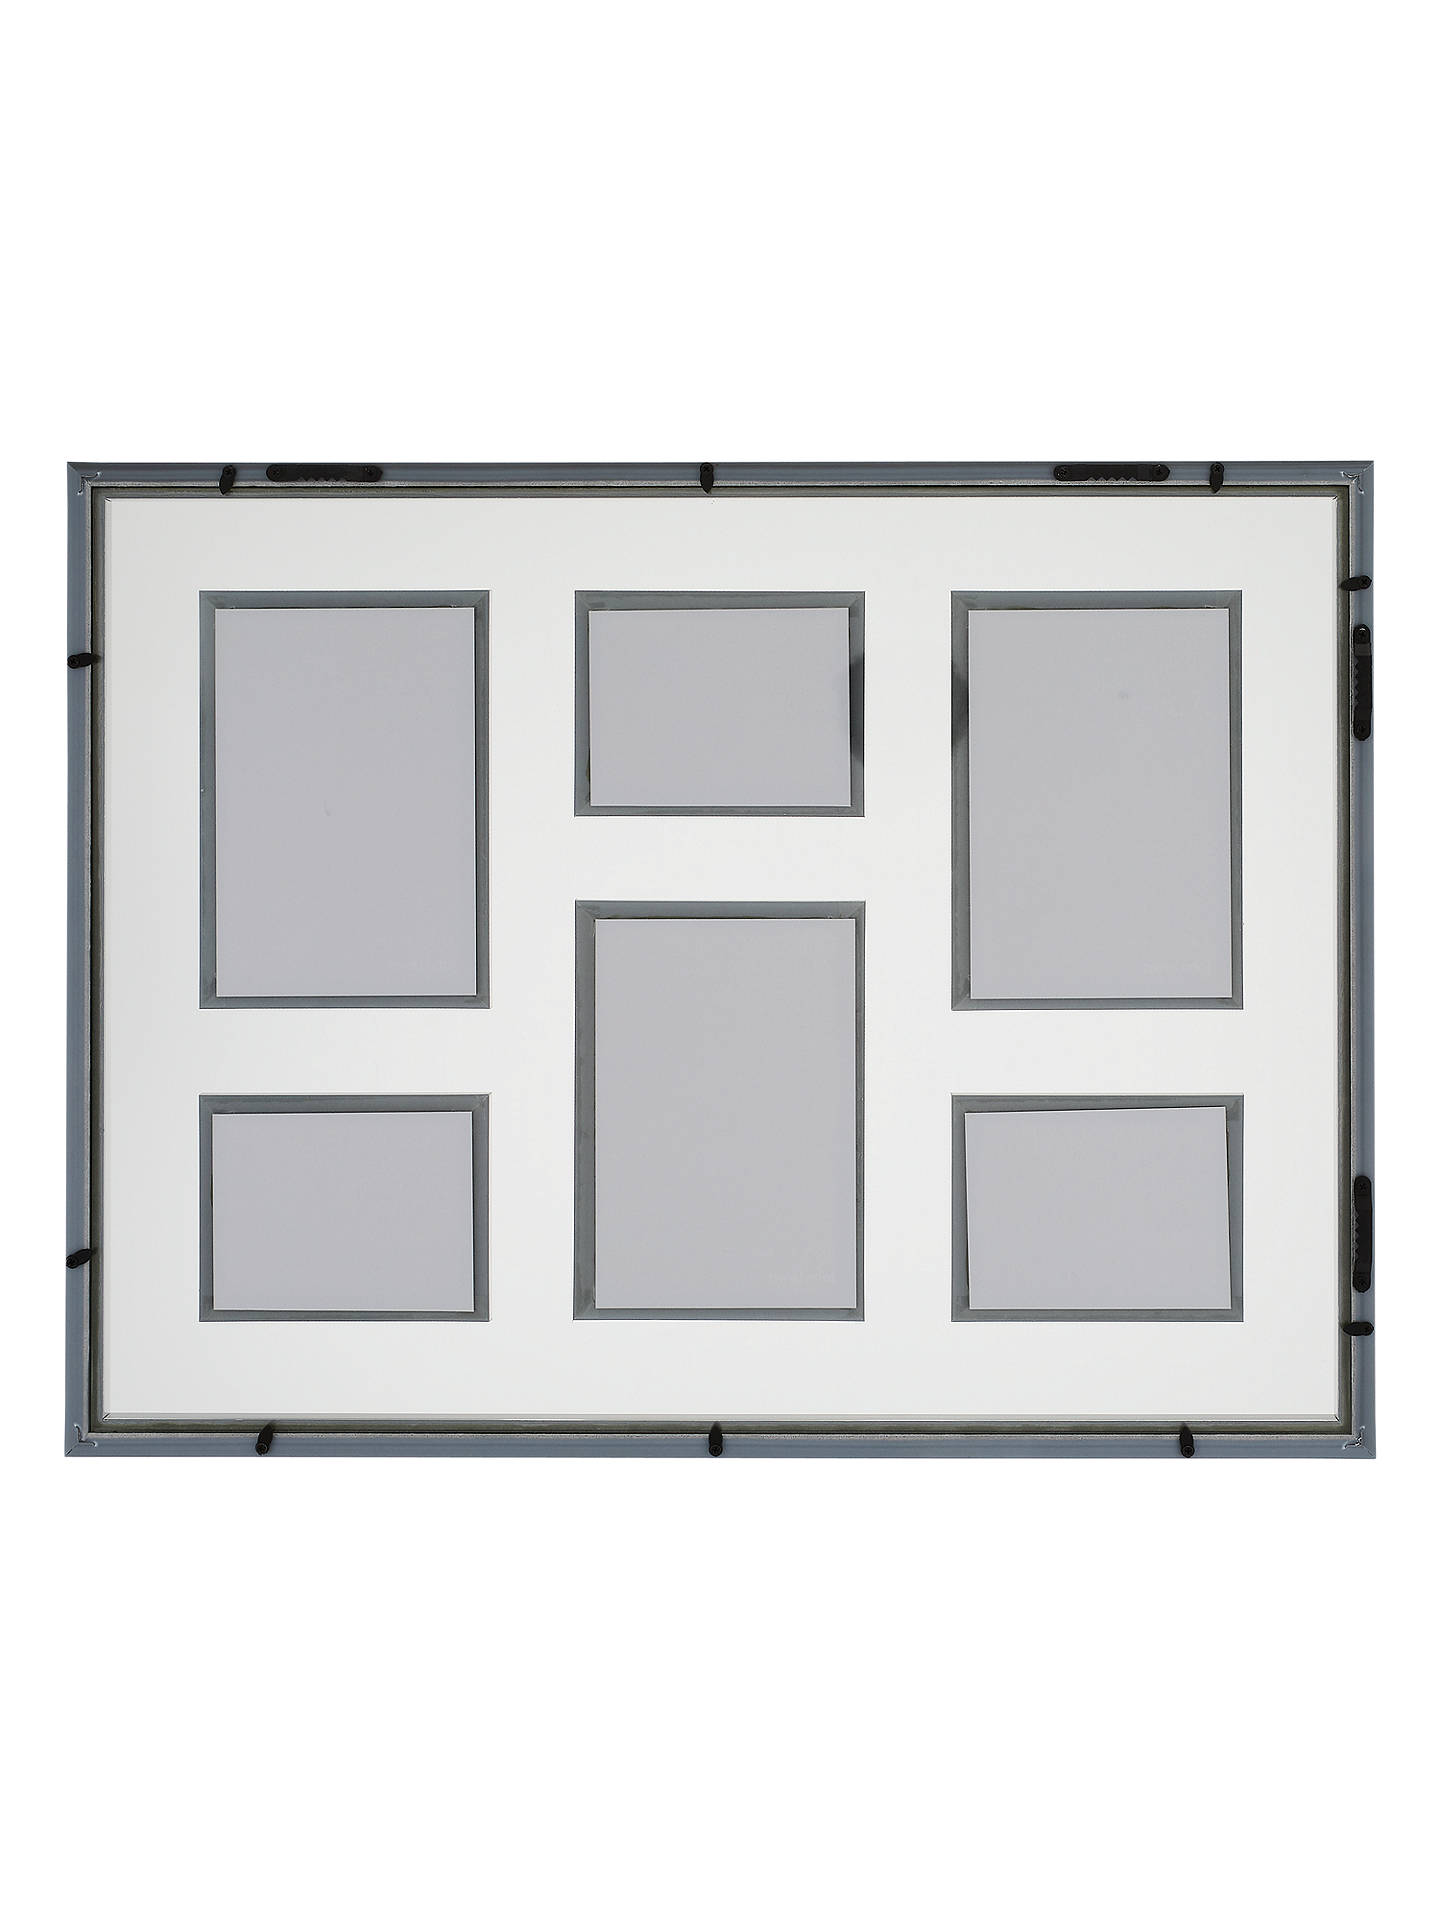 BuyJohn Lewis & Partners Clover Multi-aperture Floating Photo Frame, 6 Photo, Silver Online at johnlewis.com